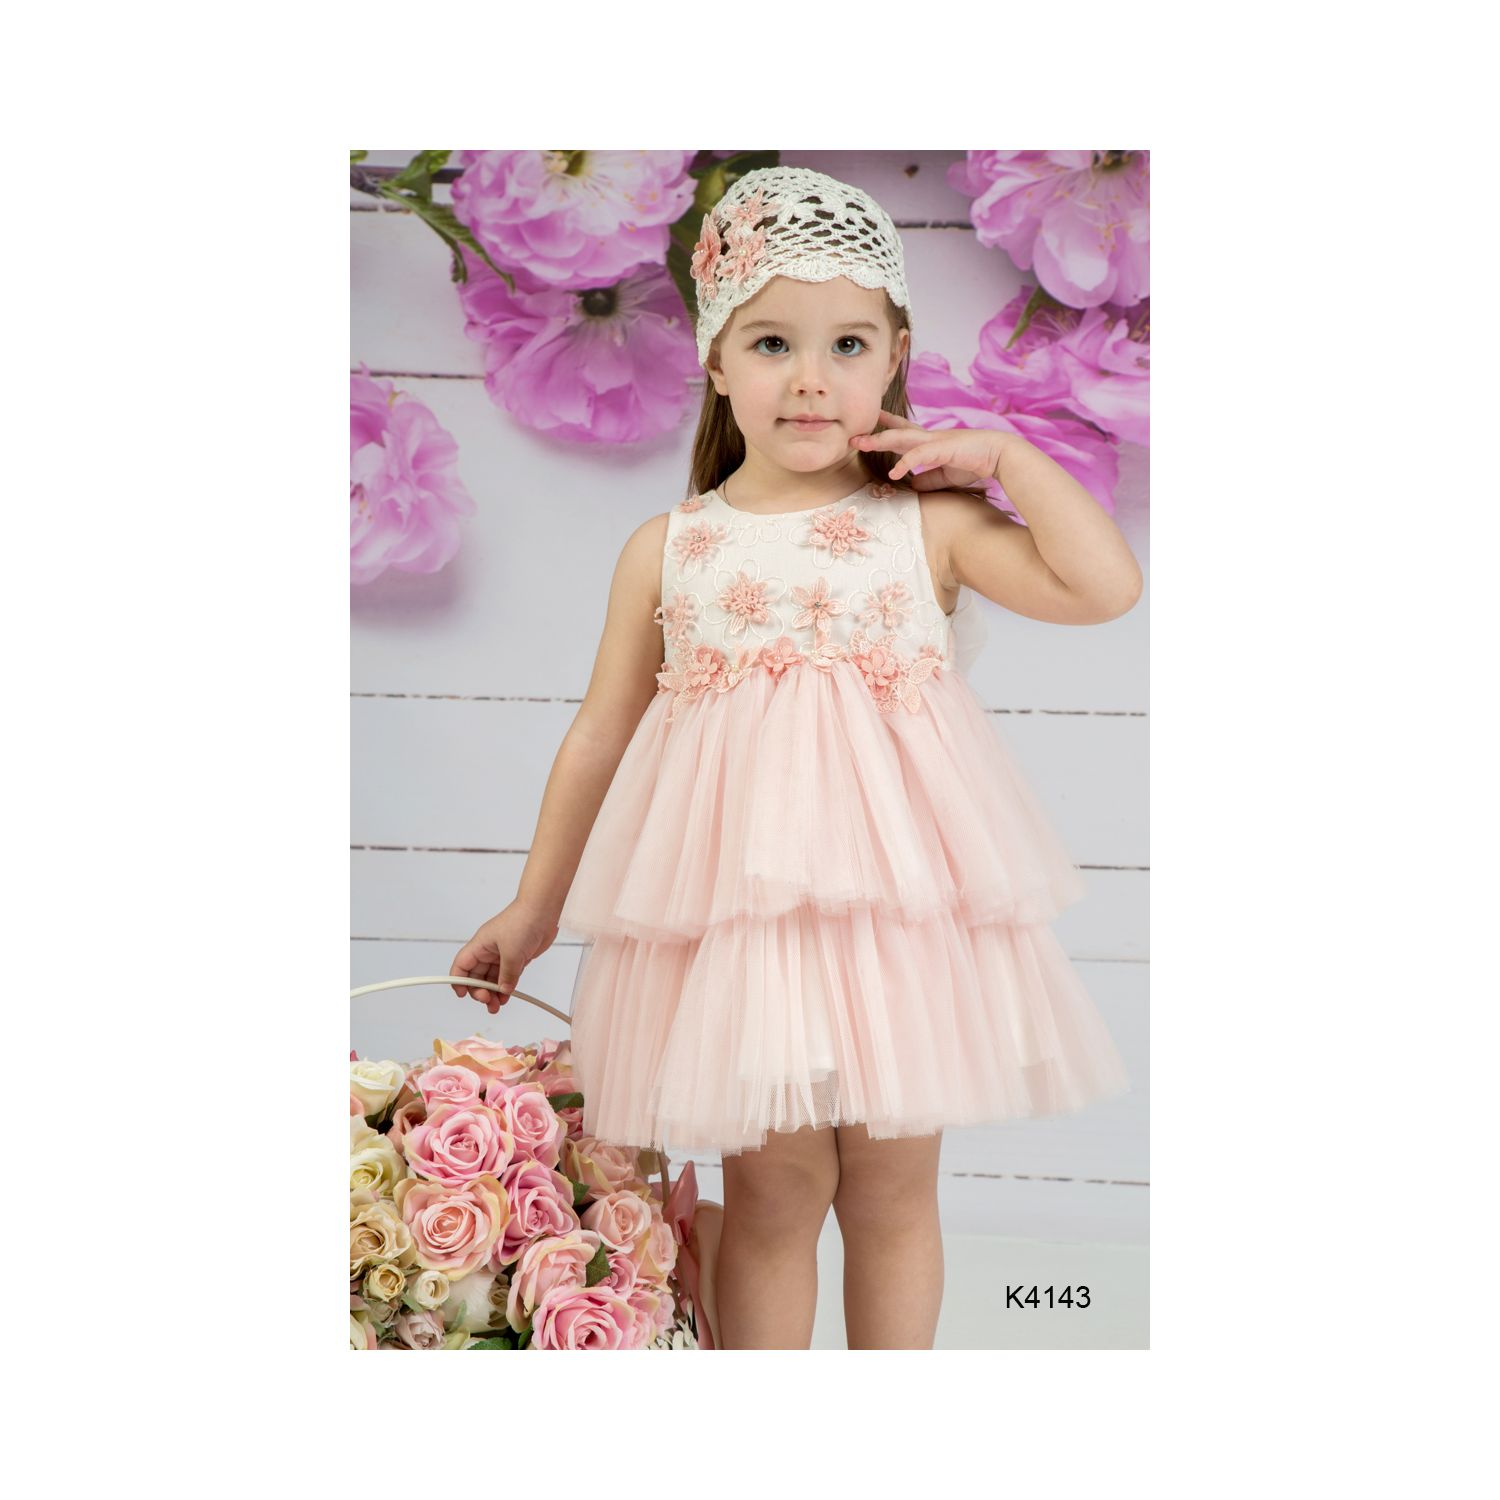 Baptism clothes for girls K4143